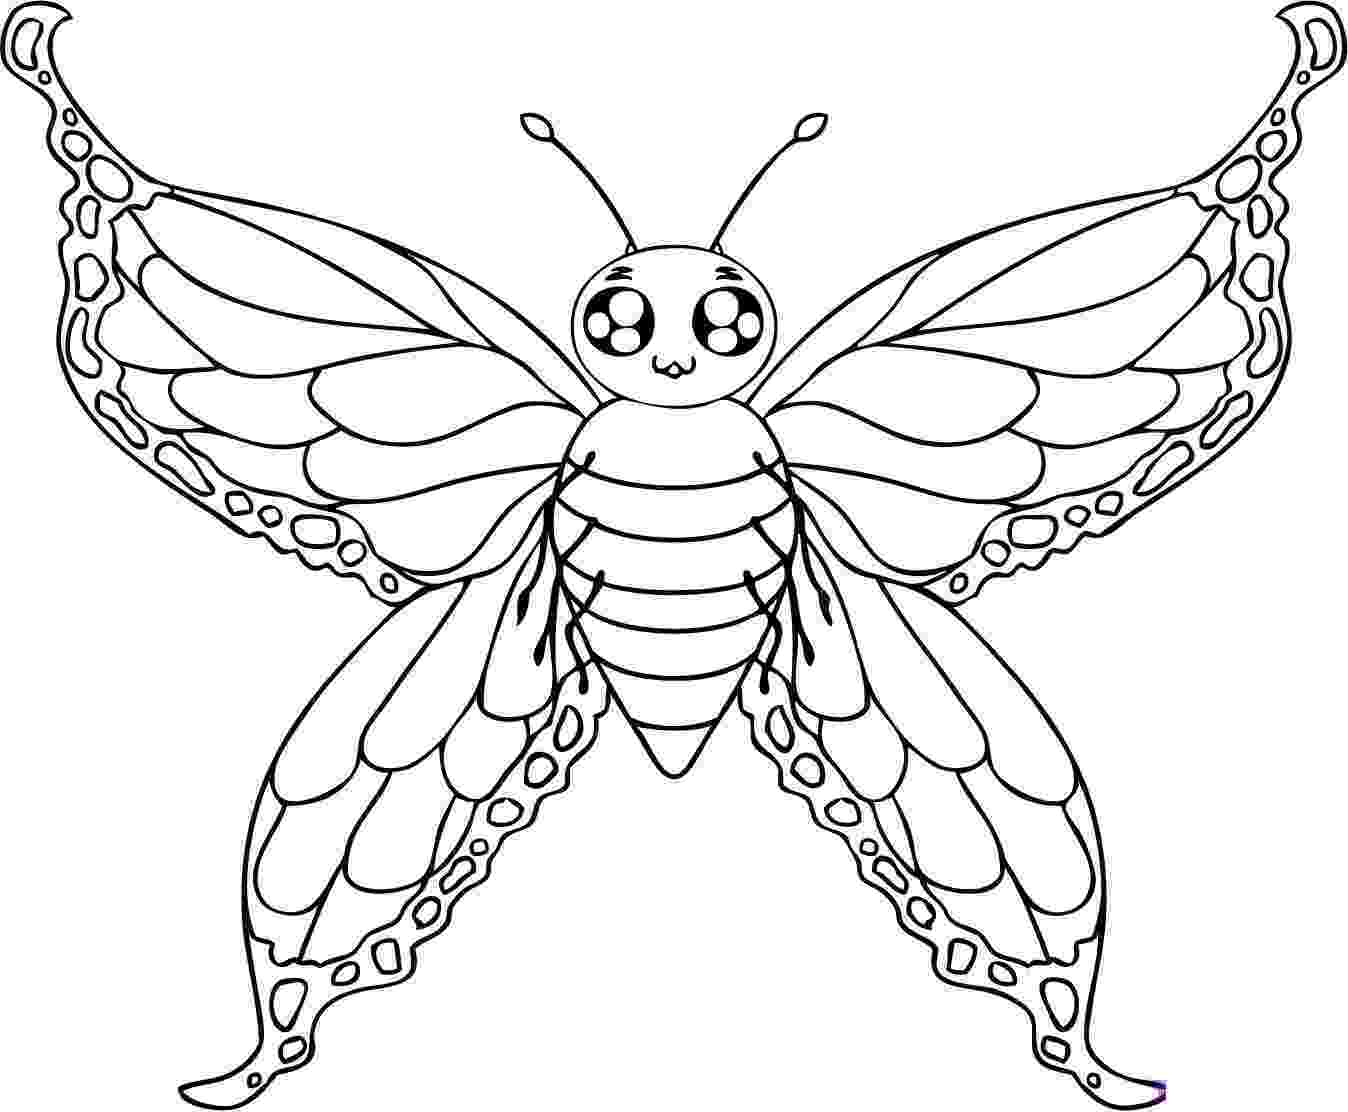 printable butterfly coloring page free printable butterfly coloring pages for kids printable coloring butterfly page 1 1